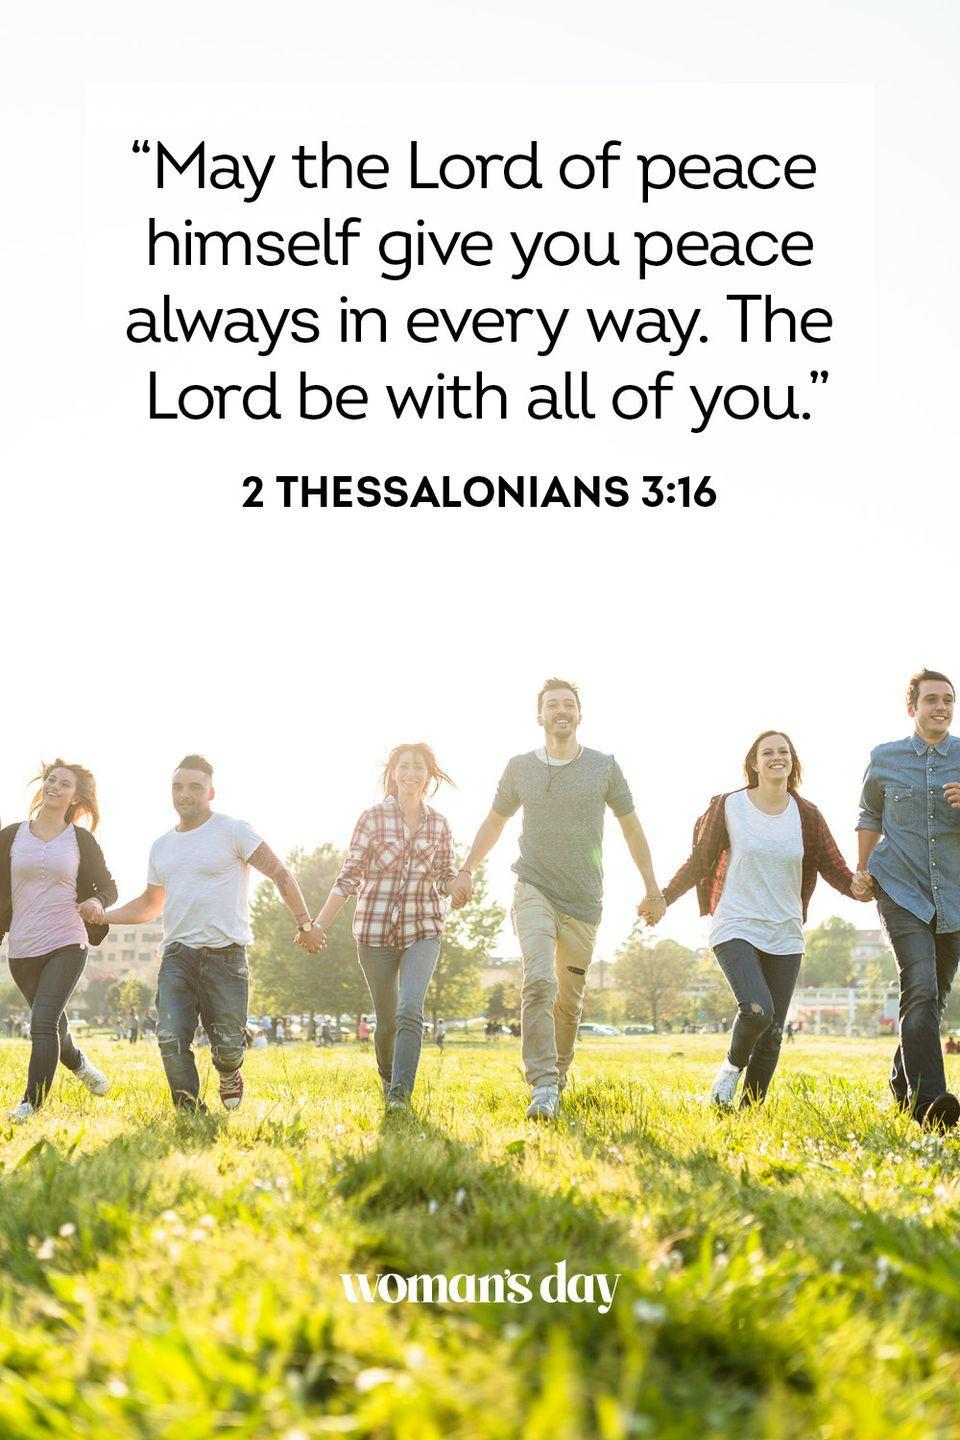 """<p>""""May the Lord of peace himself give you peace always in every way. The Lord be with all of you.""""</p><p><strong>The Good News:</strong> If you have God's peace in your hearts, you need not be troubled or worried. You have God to count on in every situation.</p>"""